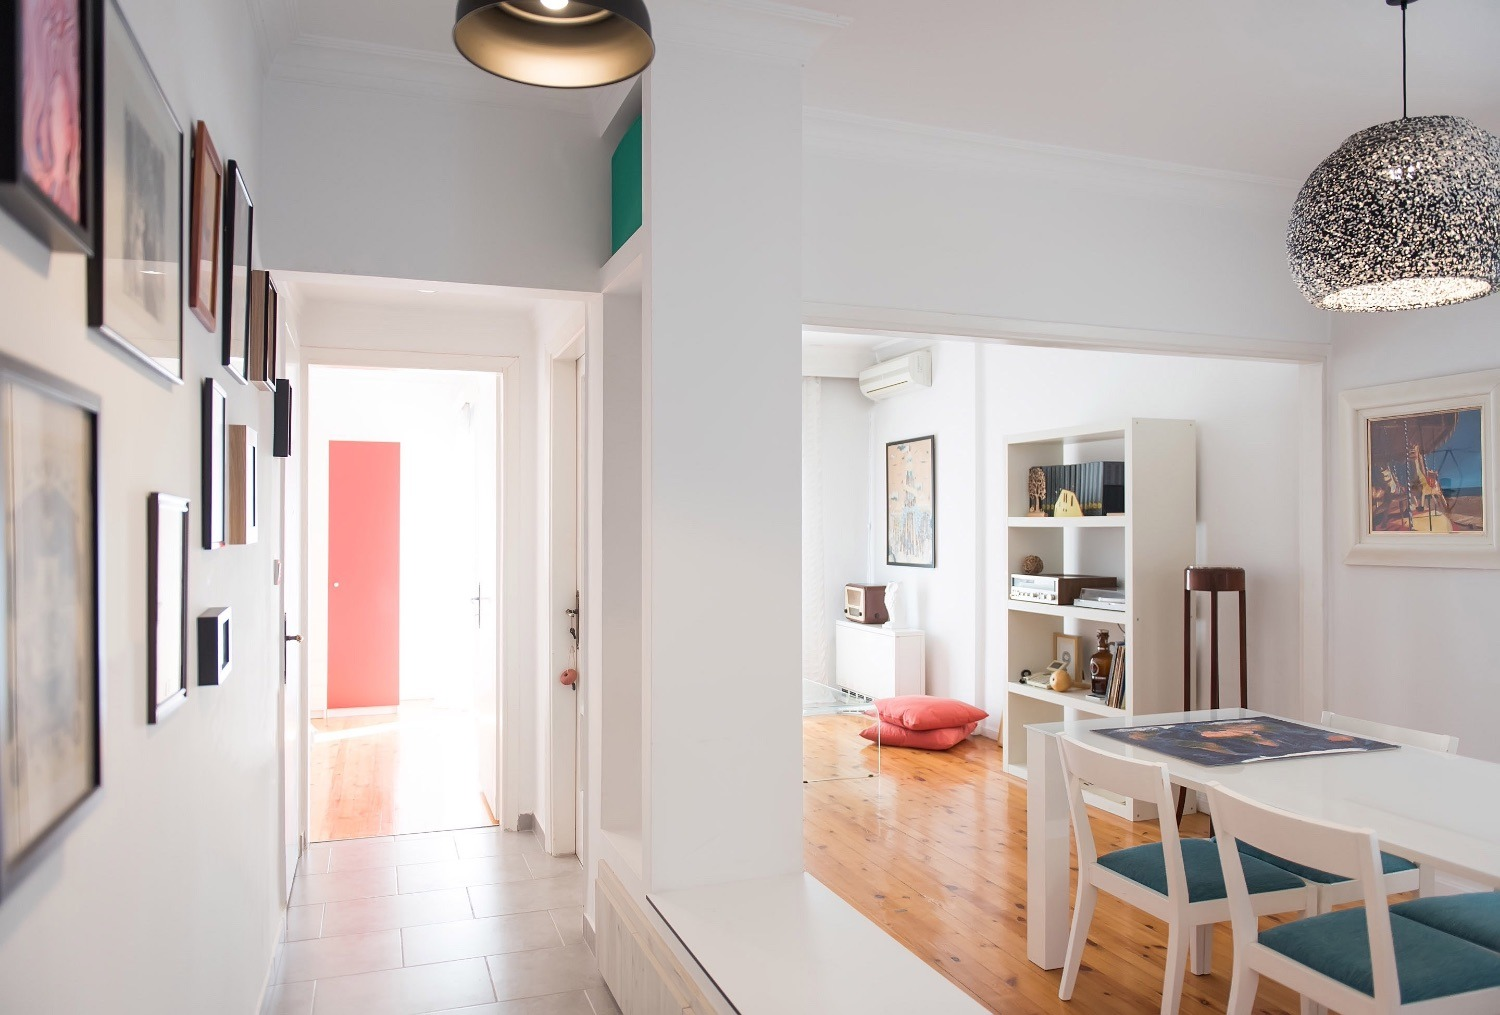 Apartment Hallway with Dining Area, Living Room and Bedroom view